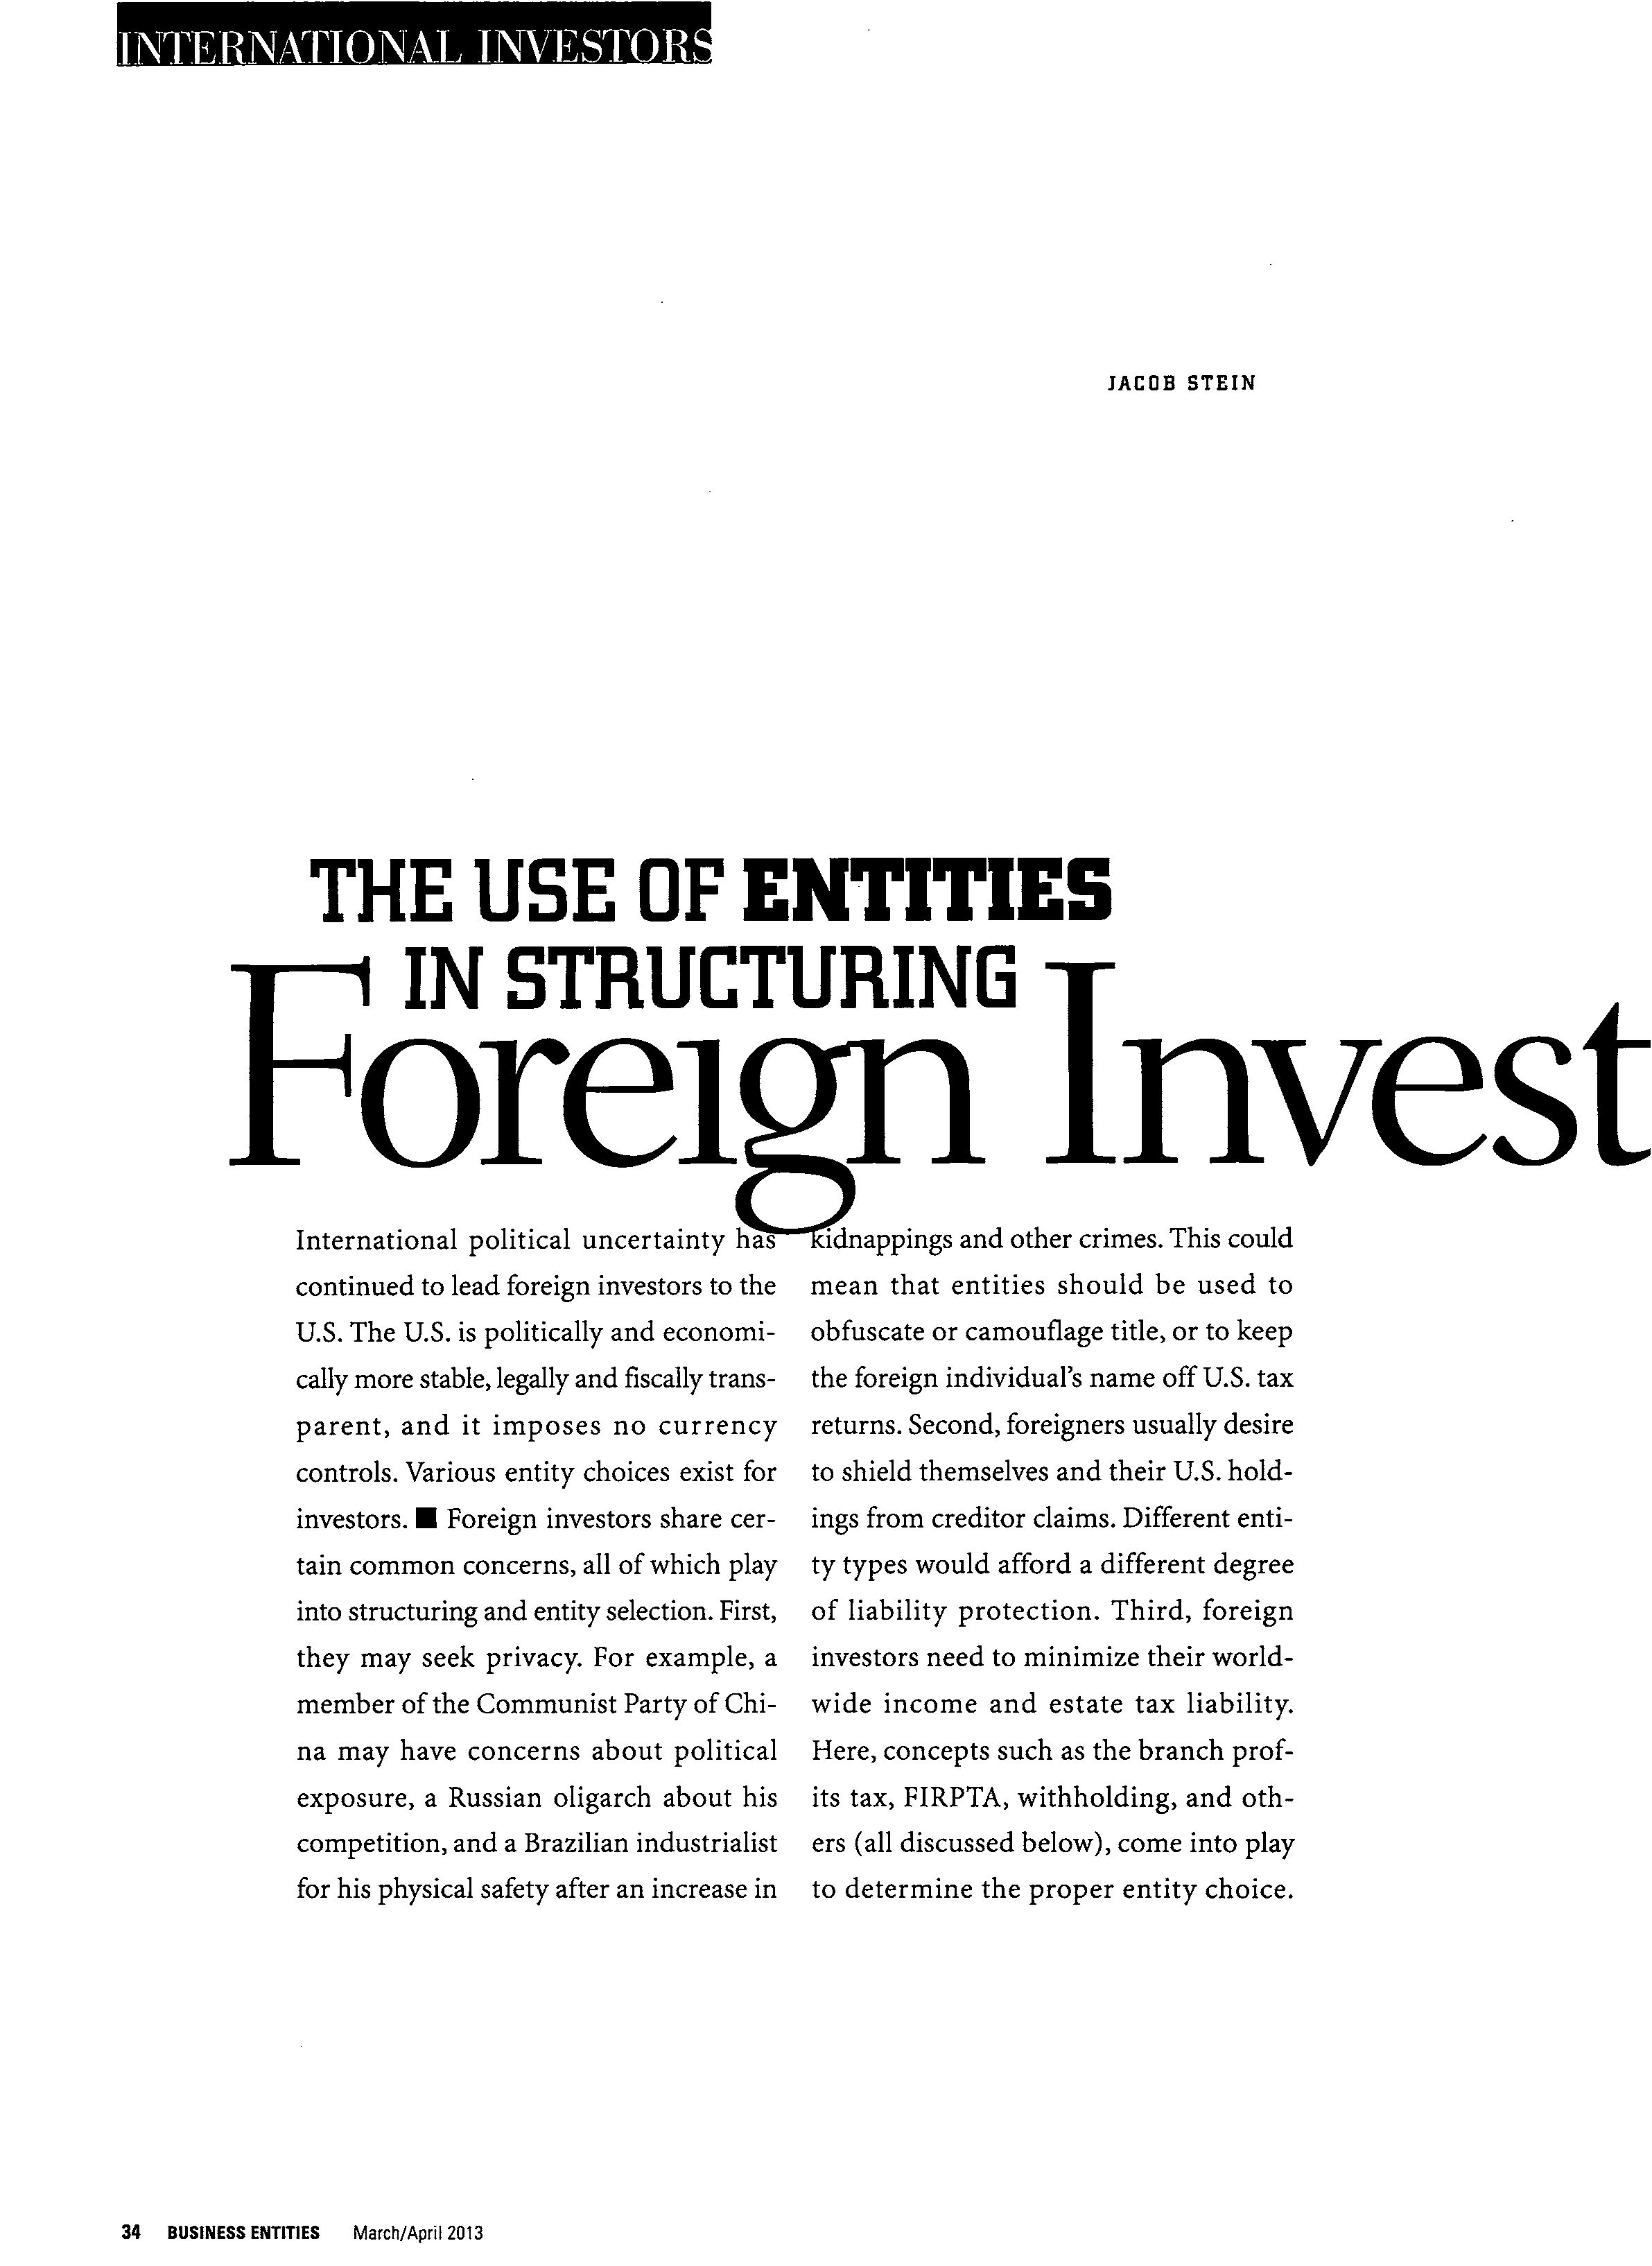 The Use of Entities in Structuring Foreign Investment